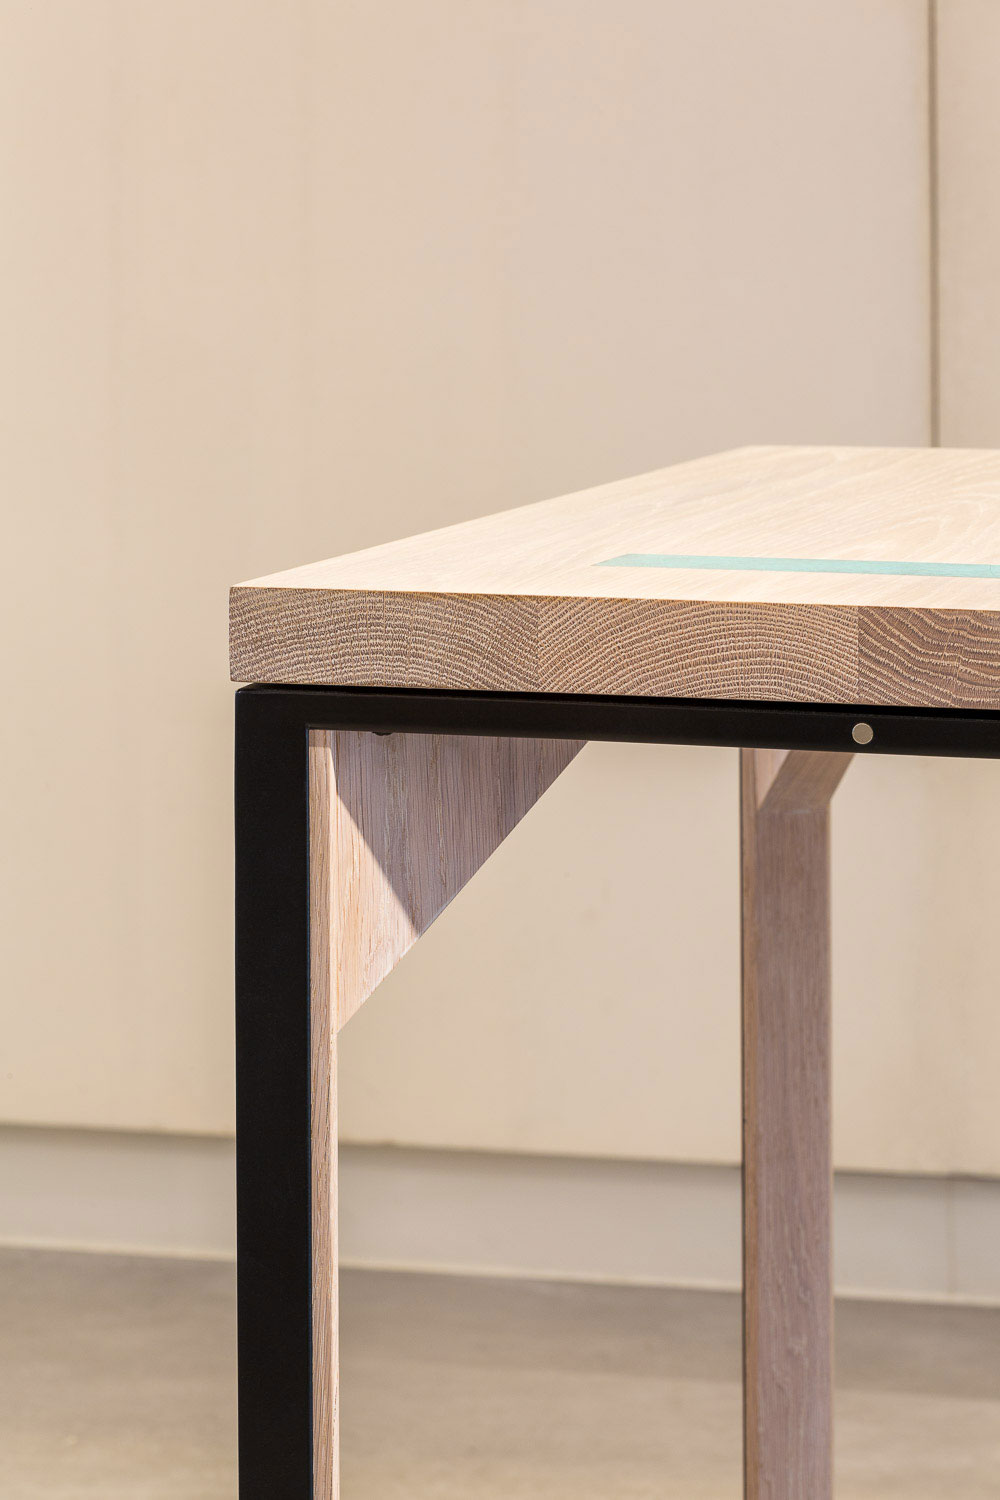 Architecture-London-Design-Freehaus-Puzzle-Table-2.jpg